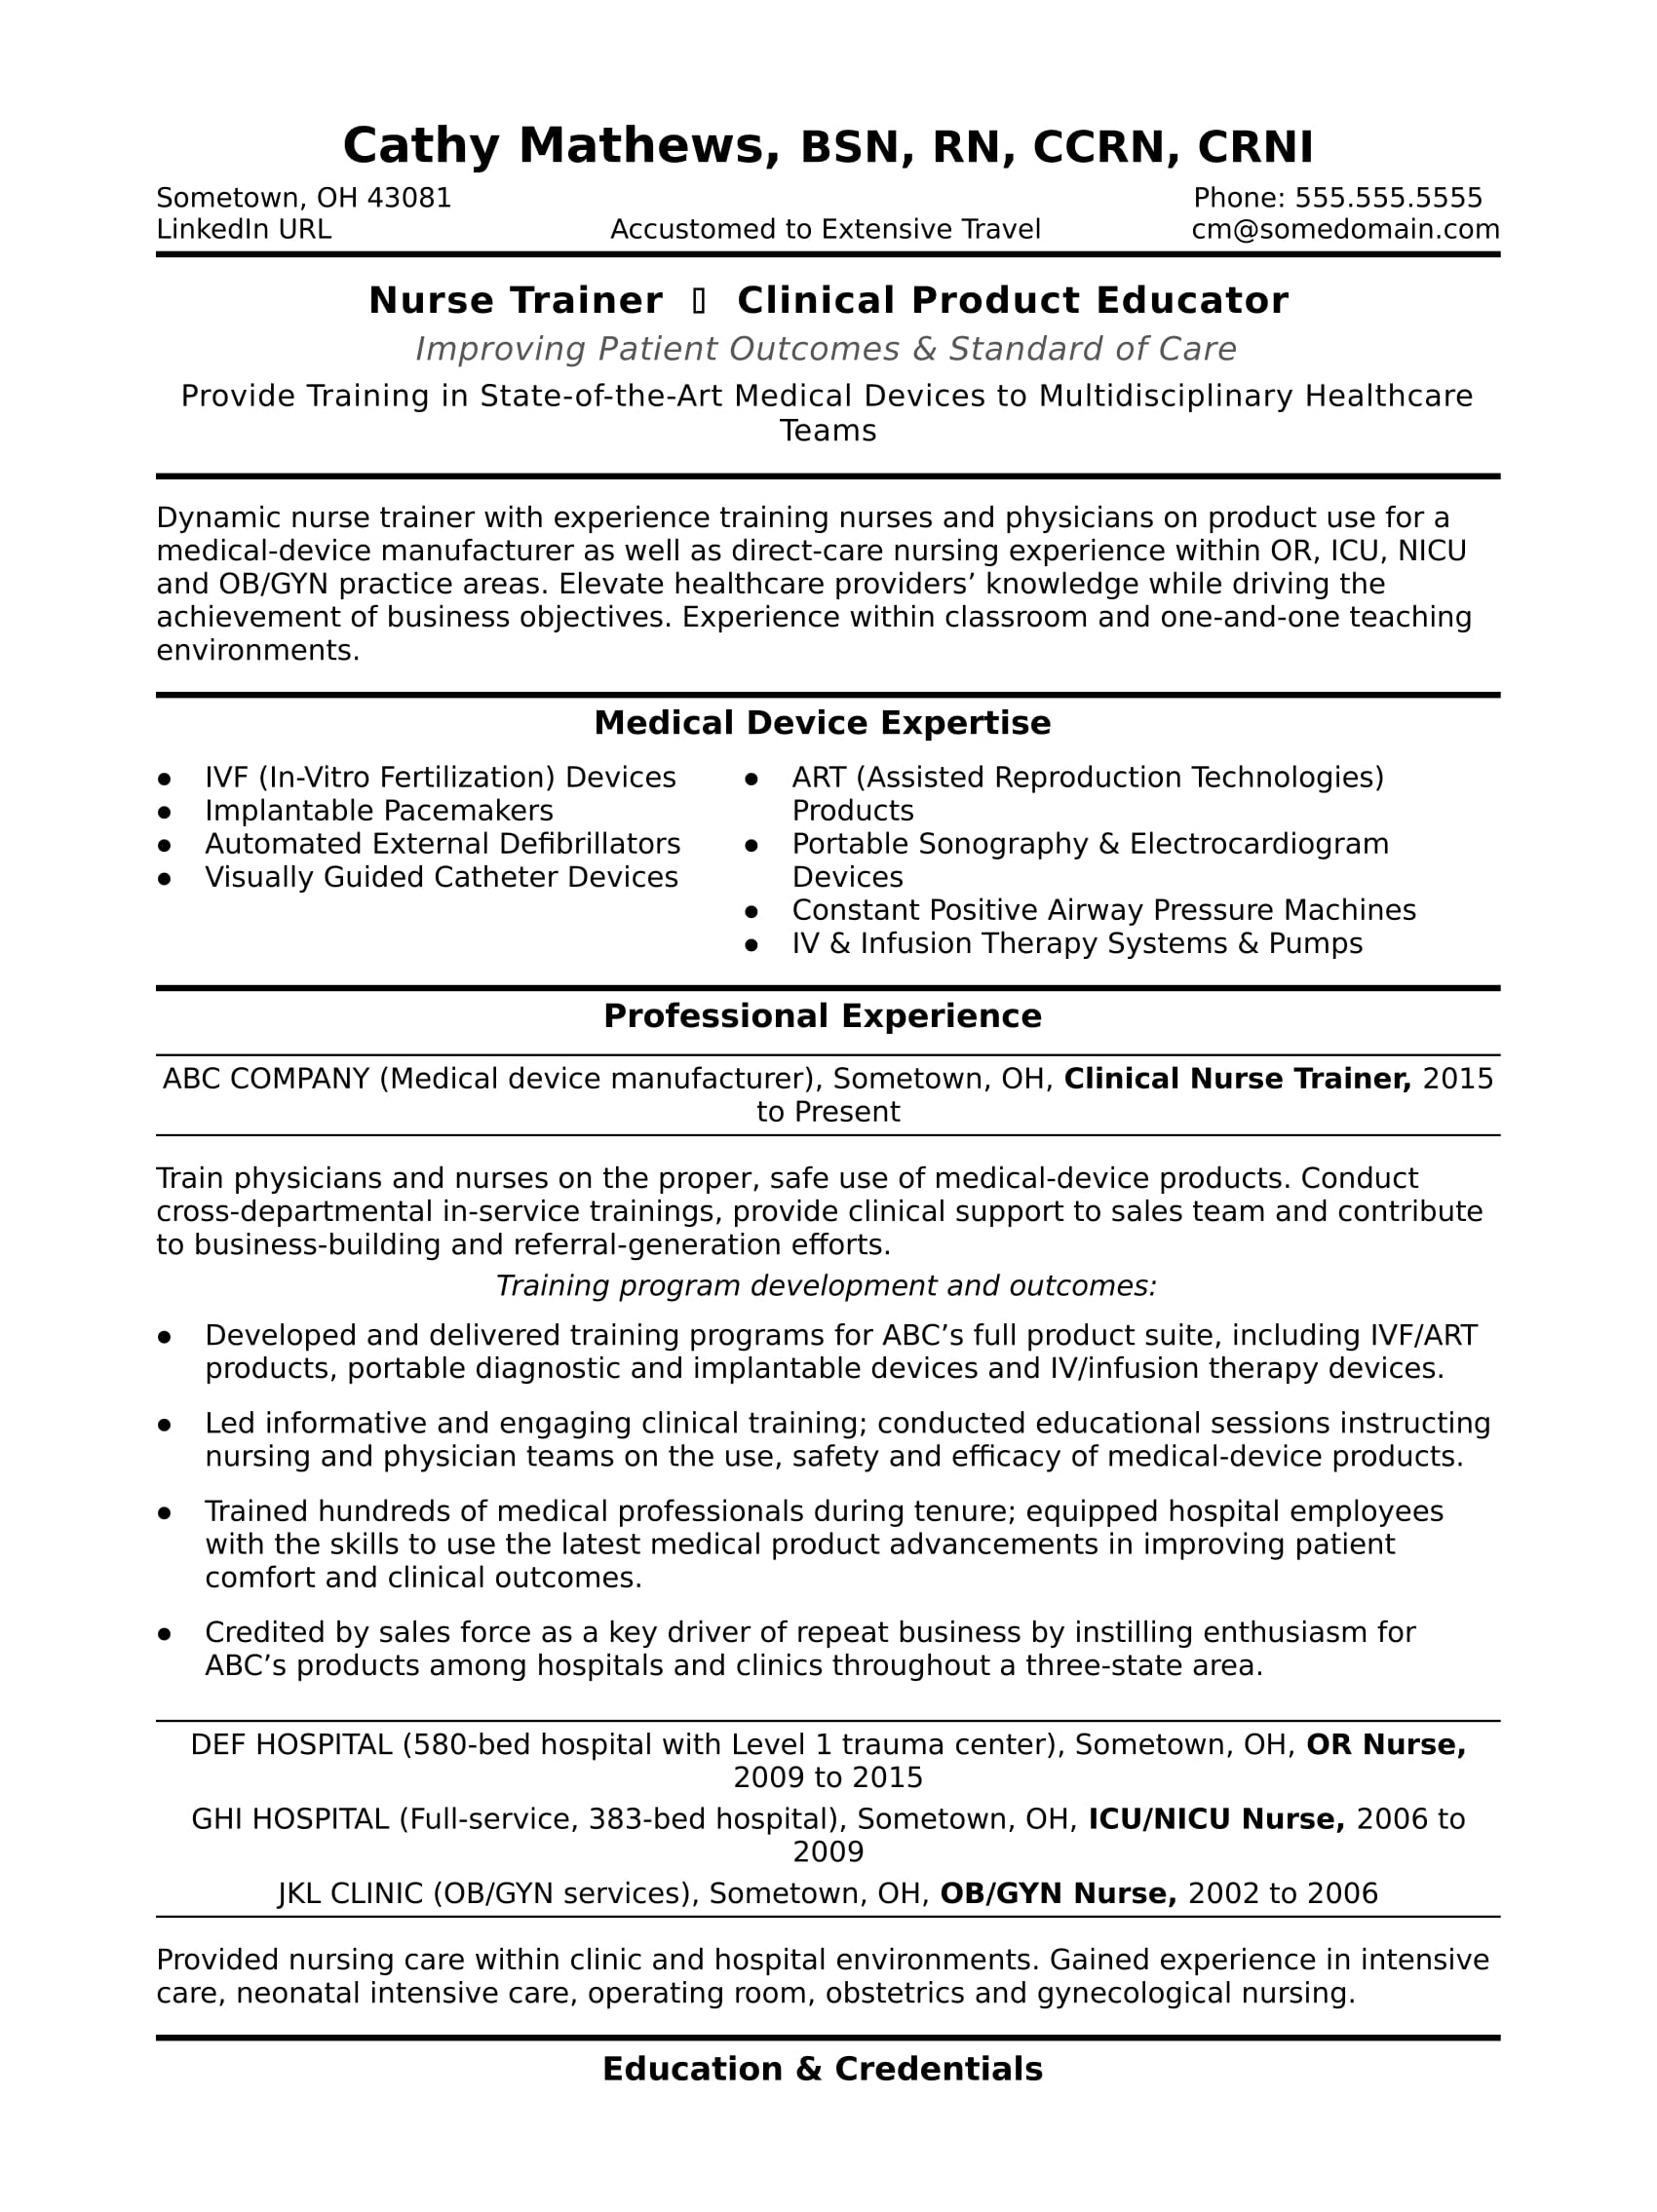 Nurse trainer resume sample monster sample resume for a nurse trainer xflitez Choice Image